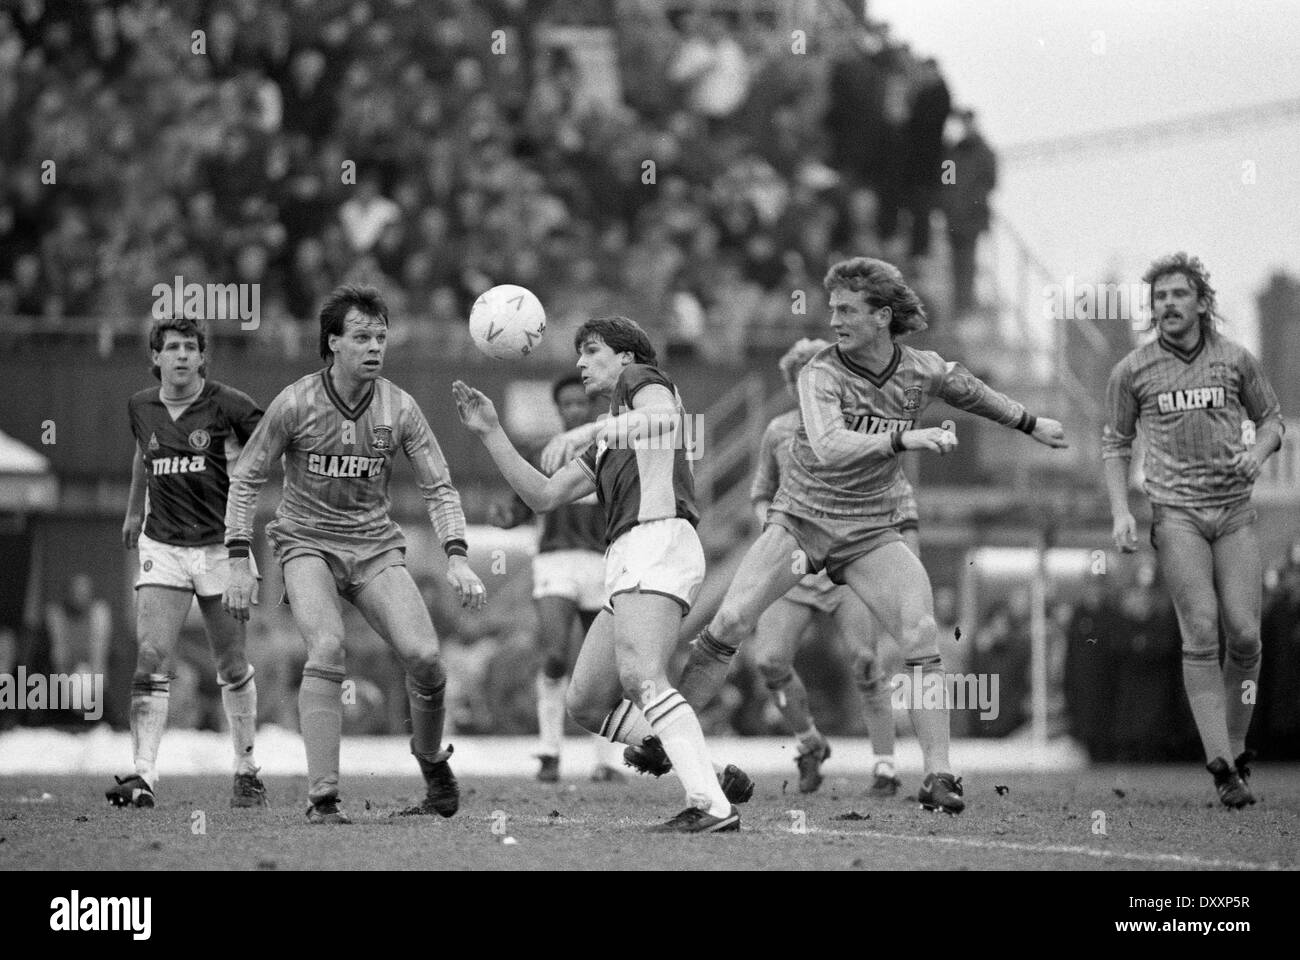 Footballers Paul Rideout and Trevor Peake. COVENTRY CITY V ASTON VILLA 19/1/1985 - Stock Image